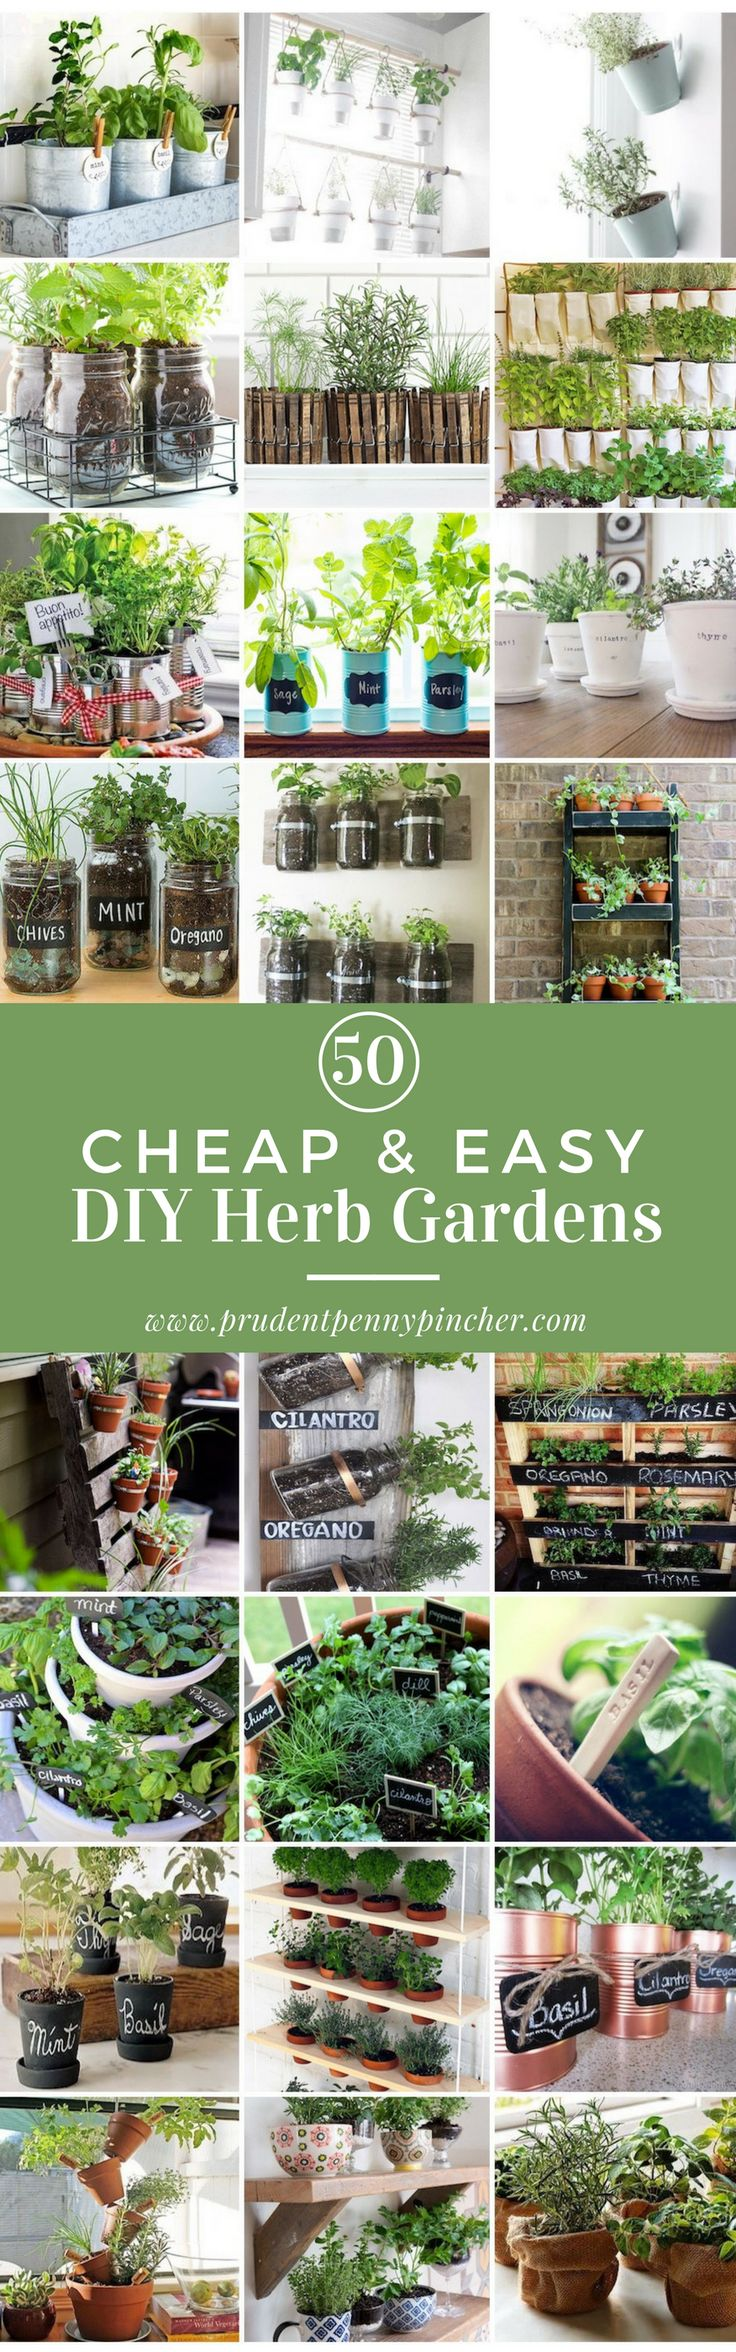 Indoor Herb Garden Ideas best 25+ diy herb garden ideas on pinterest | indoor herbs, herb